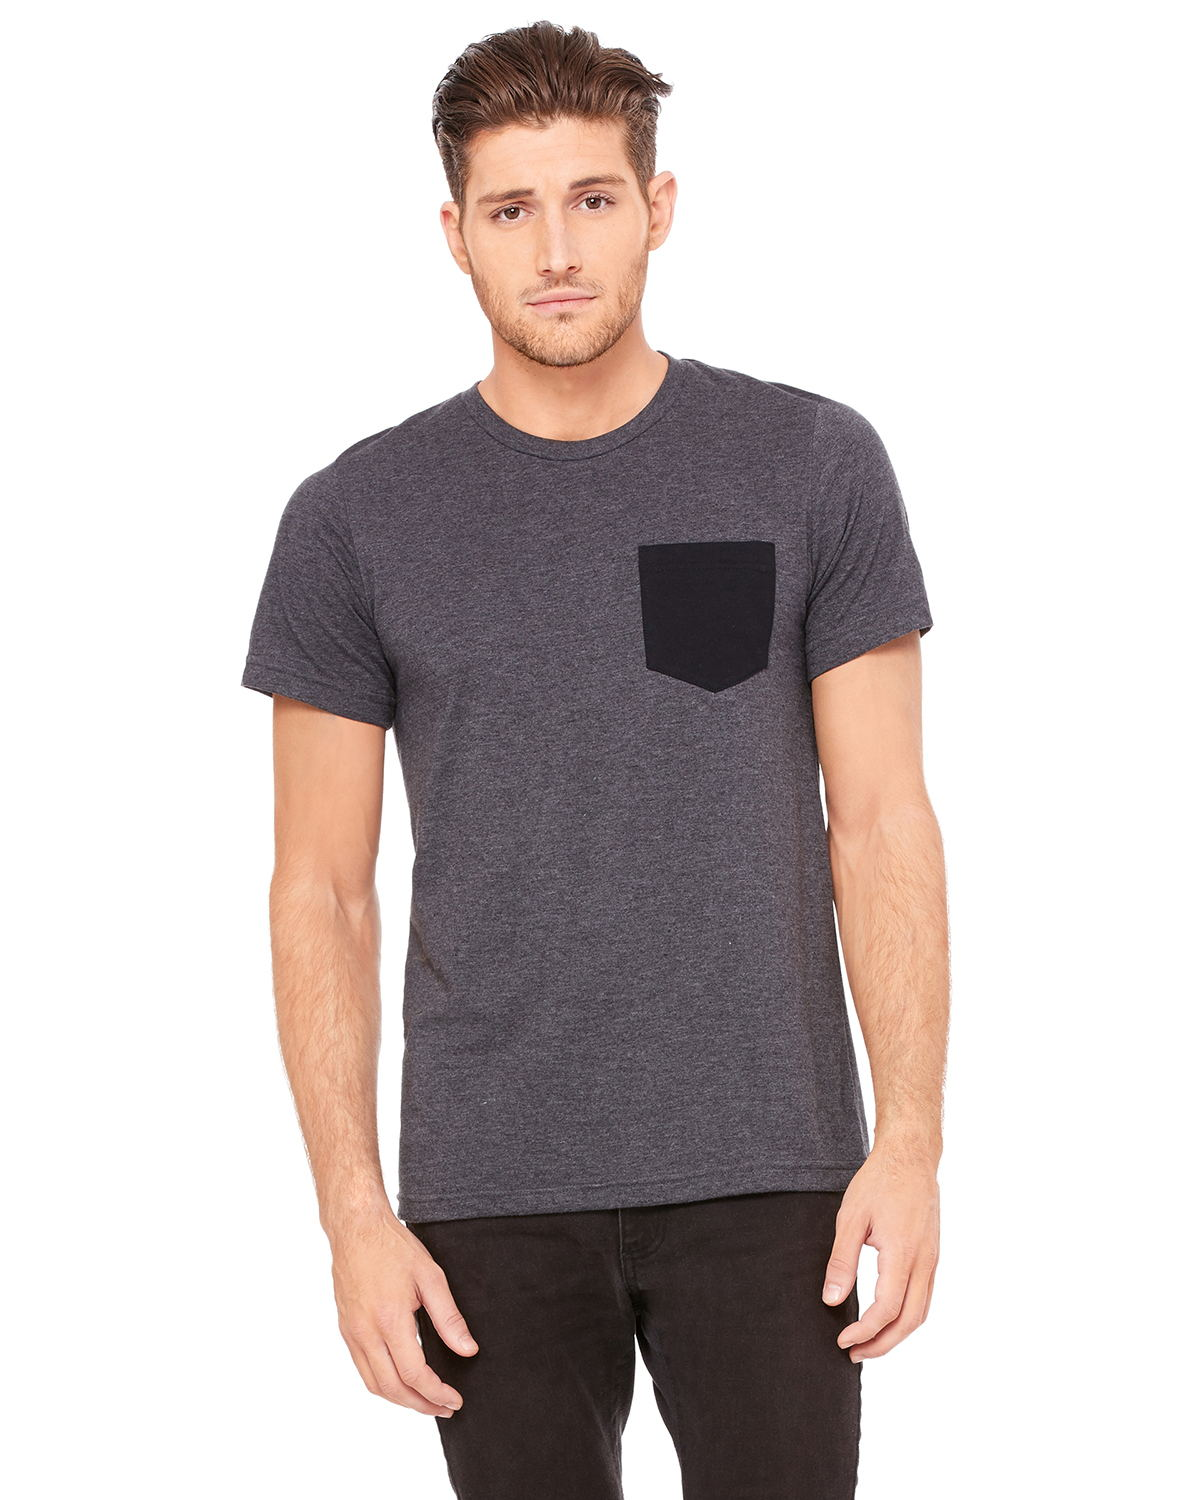 Canvas 3021 - Jersey Pocket T-Shirt